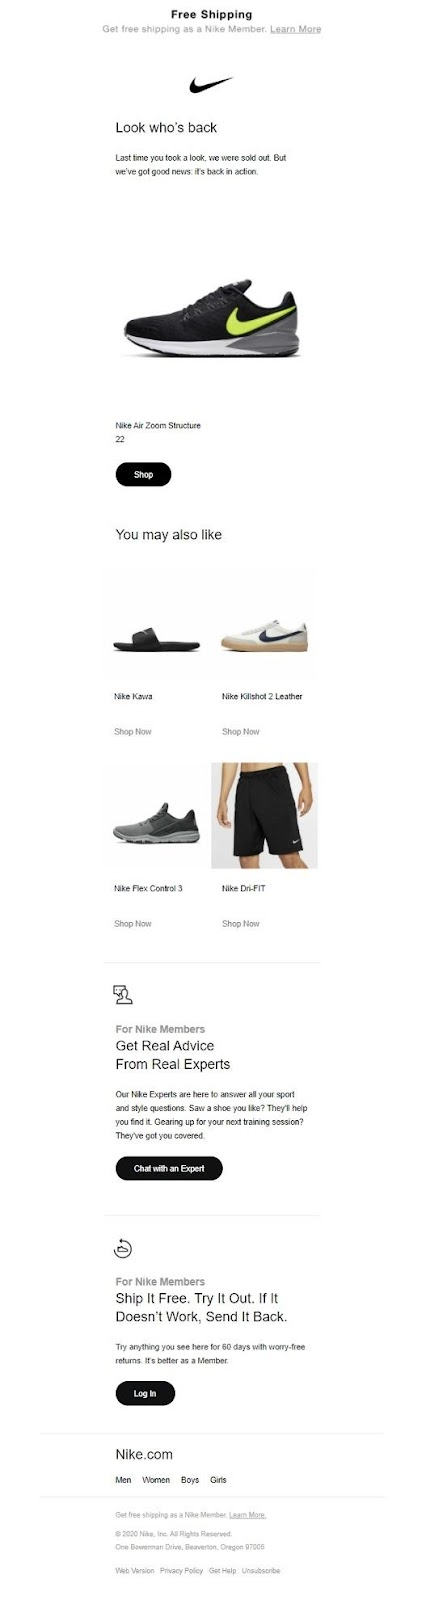 nike-product-recommendations-email-example